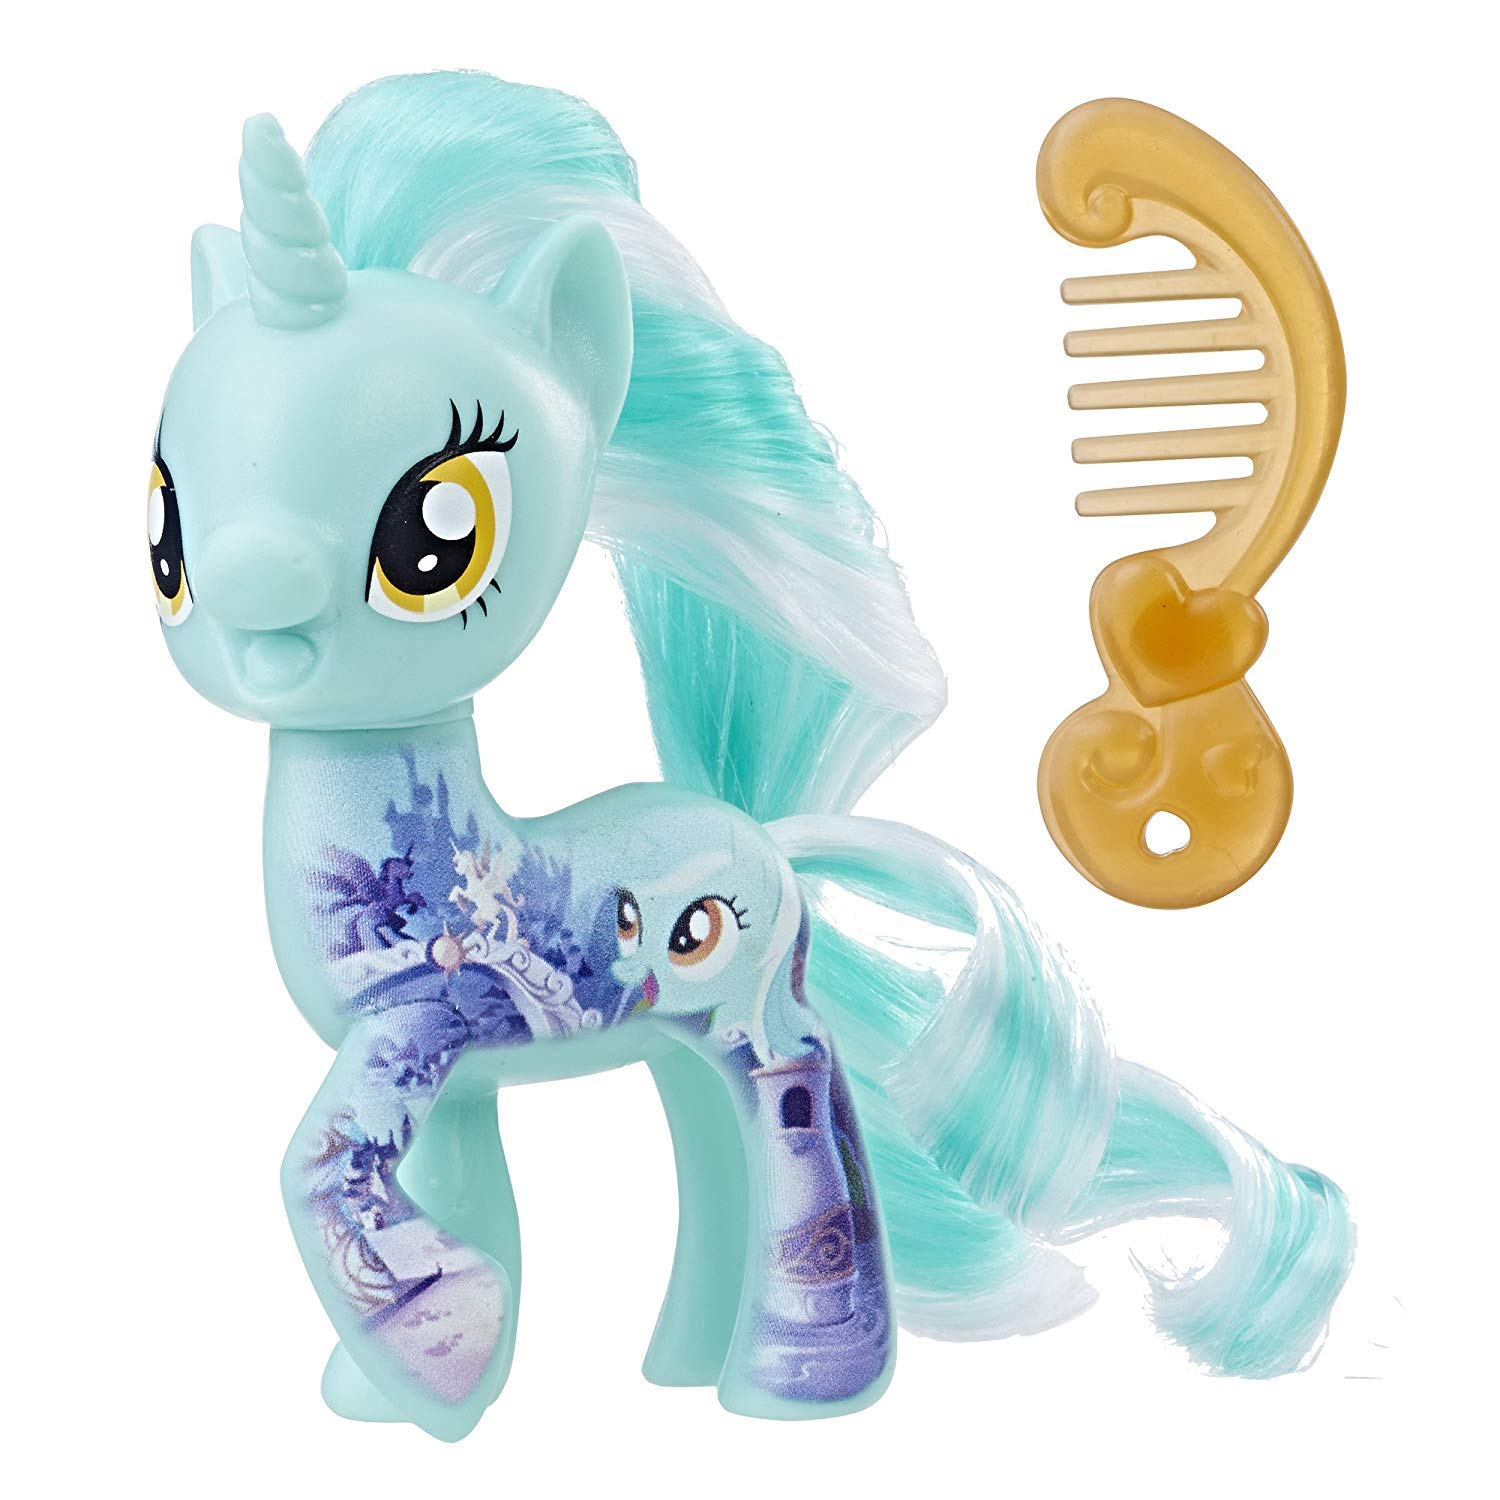 The Movie All About Lyra Heartstrings Doll, Lyra Heartstrings figure By My Little Pony